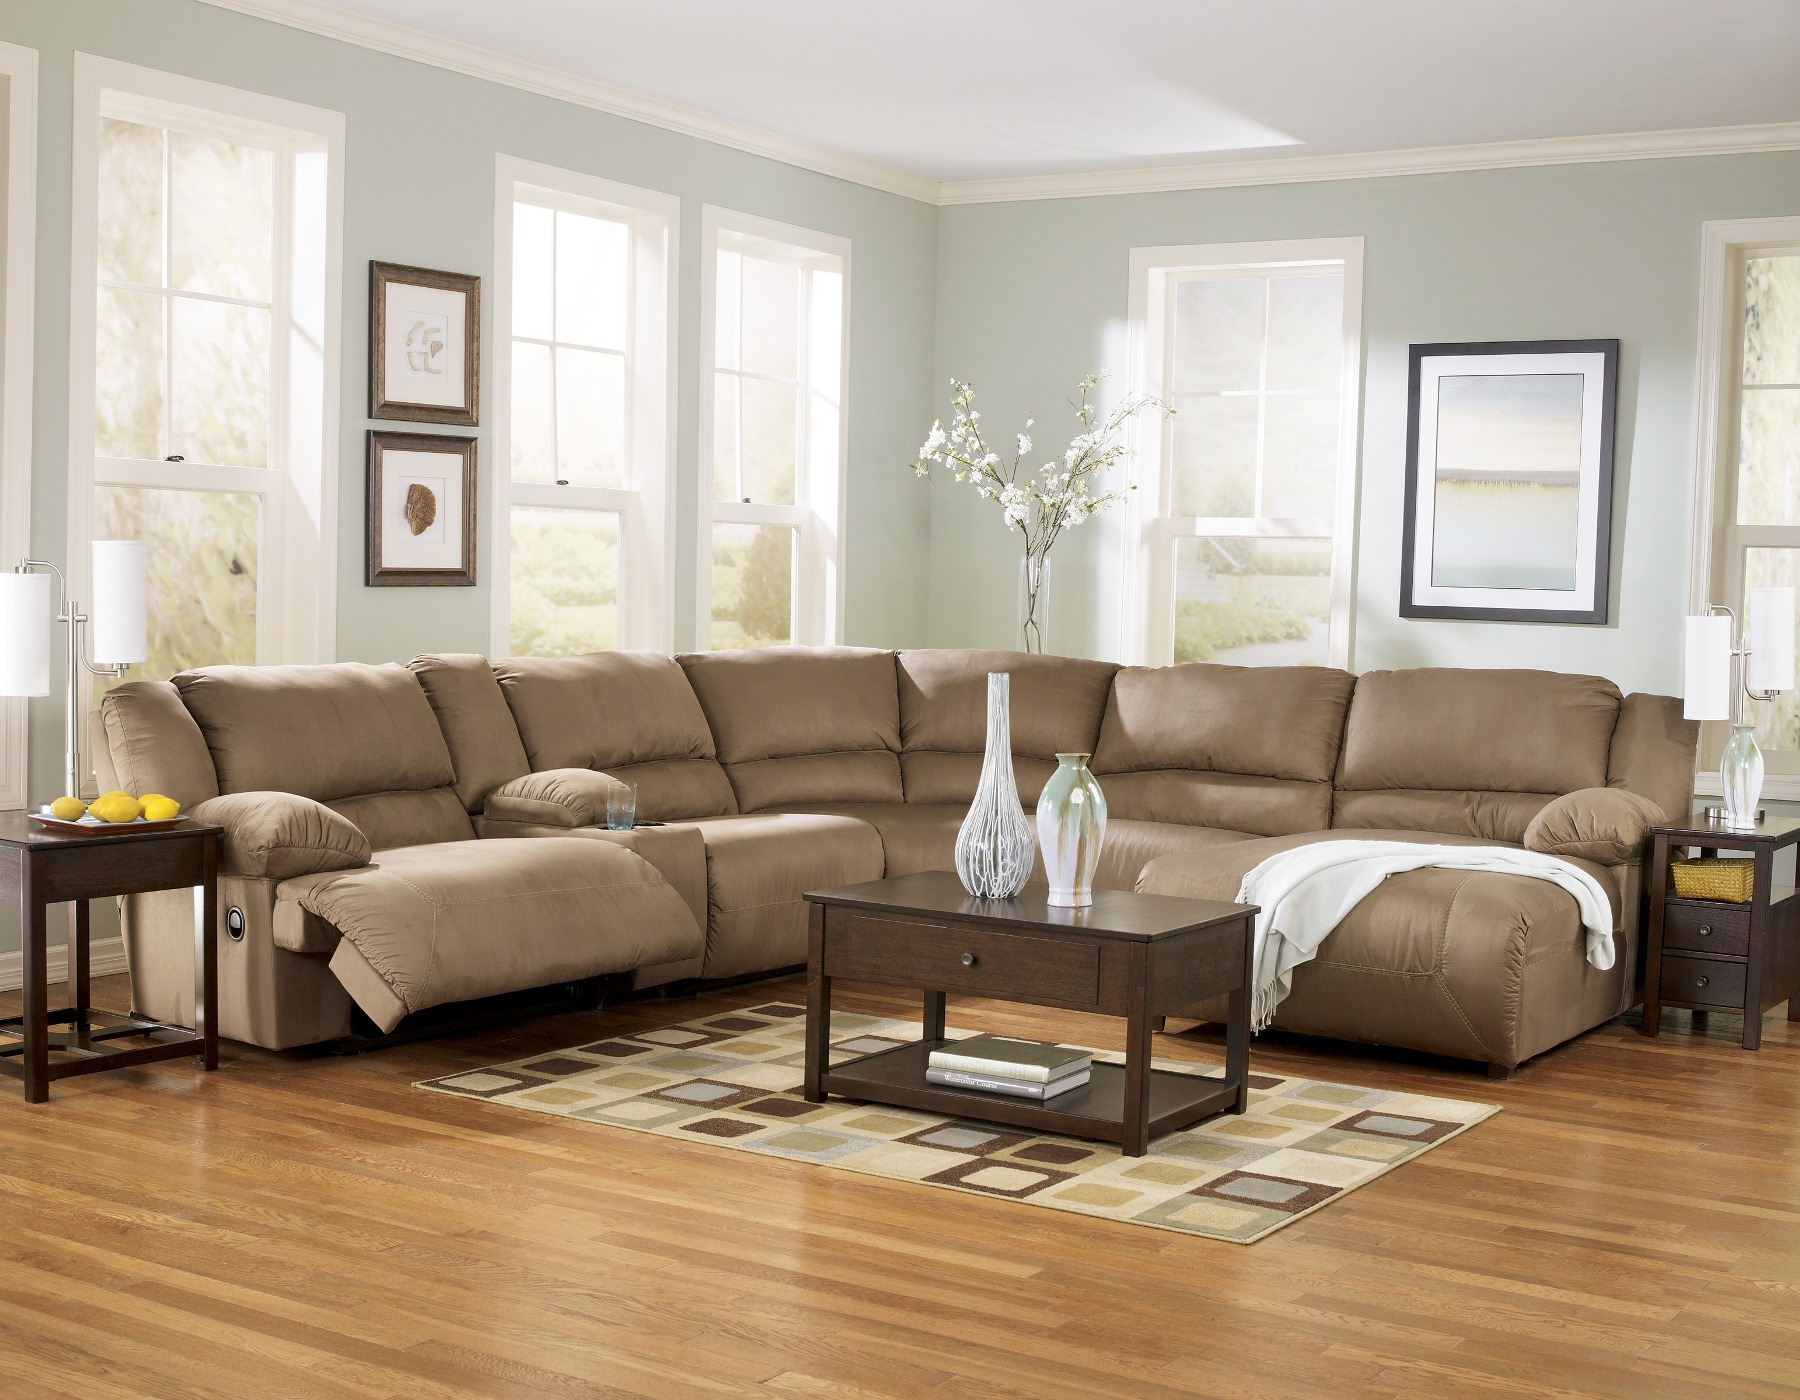 Living room couches - 22 reasons to renew your seats today! | Hawk ...